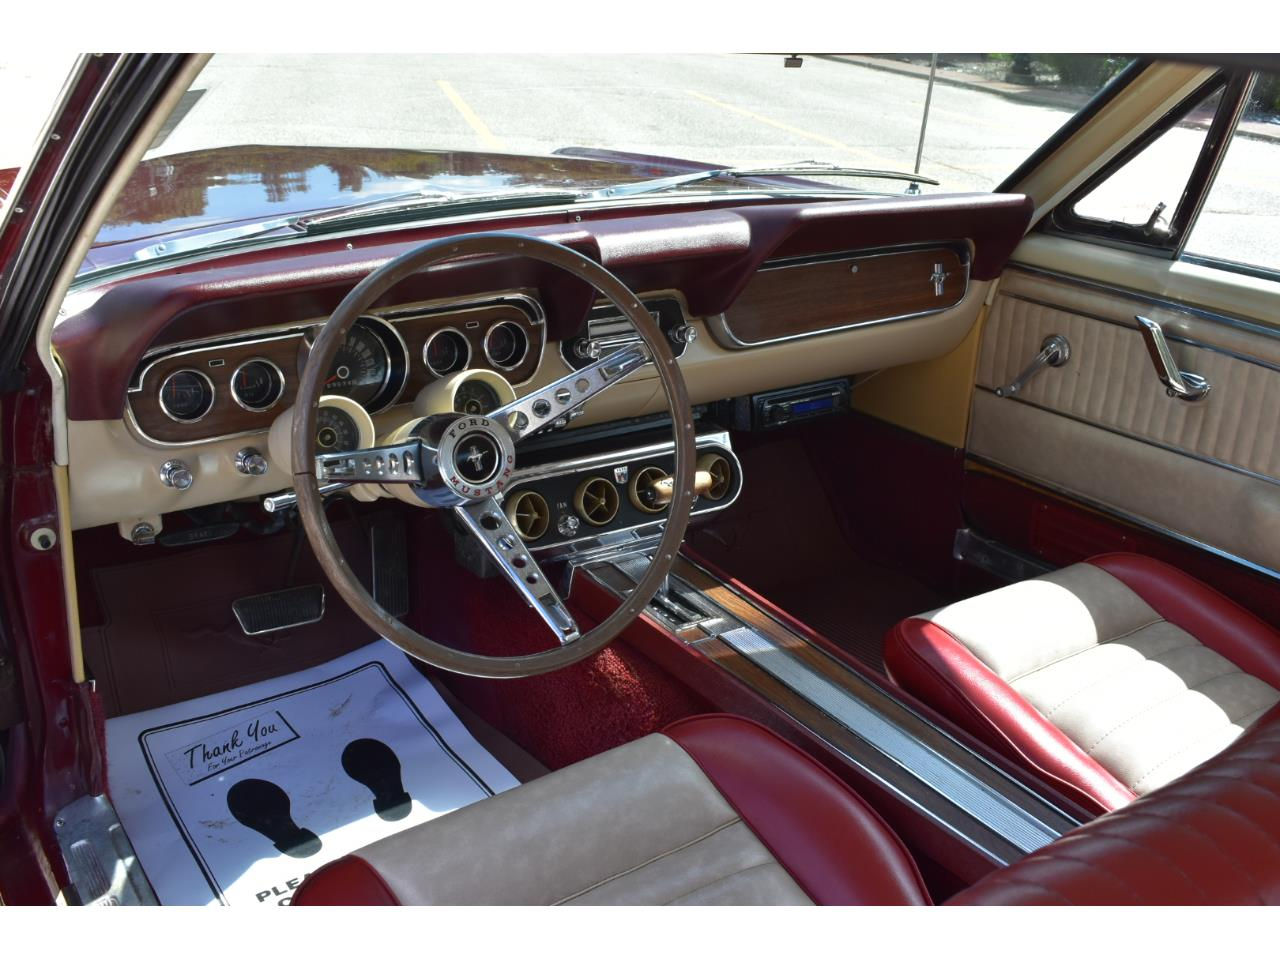 1966 Ford Mustang for sale in Greene, IA – photo 65